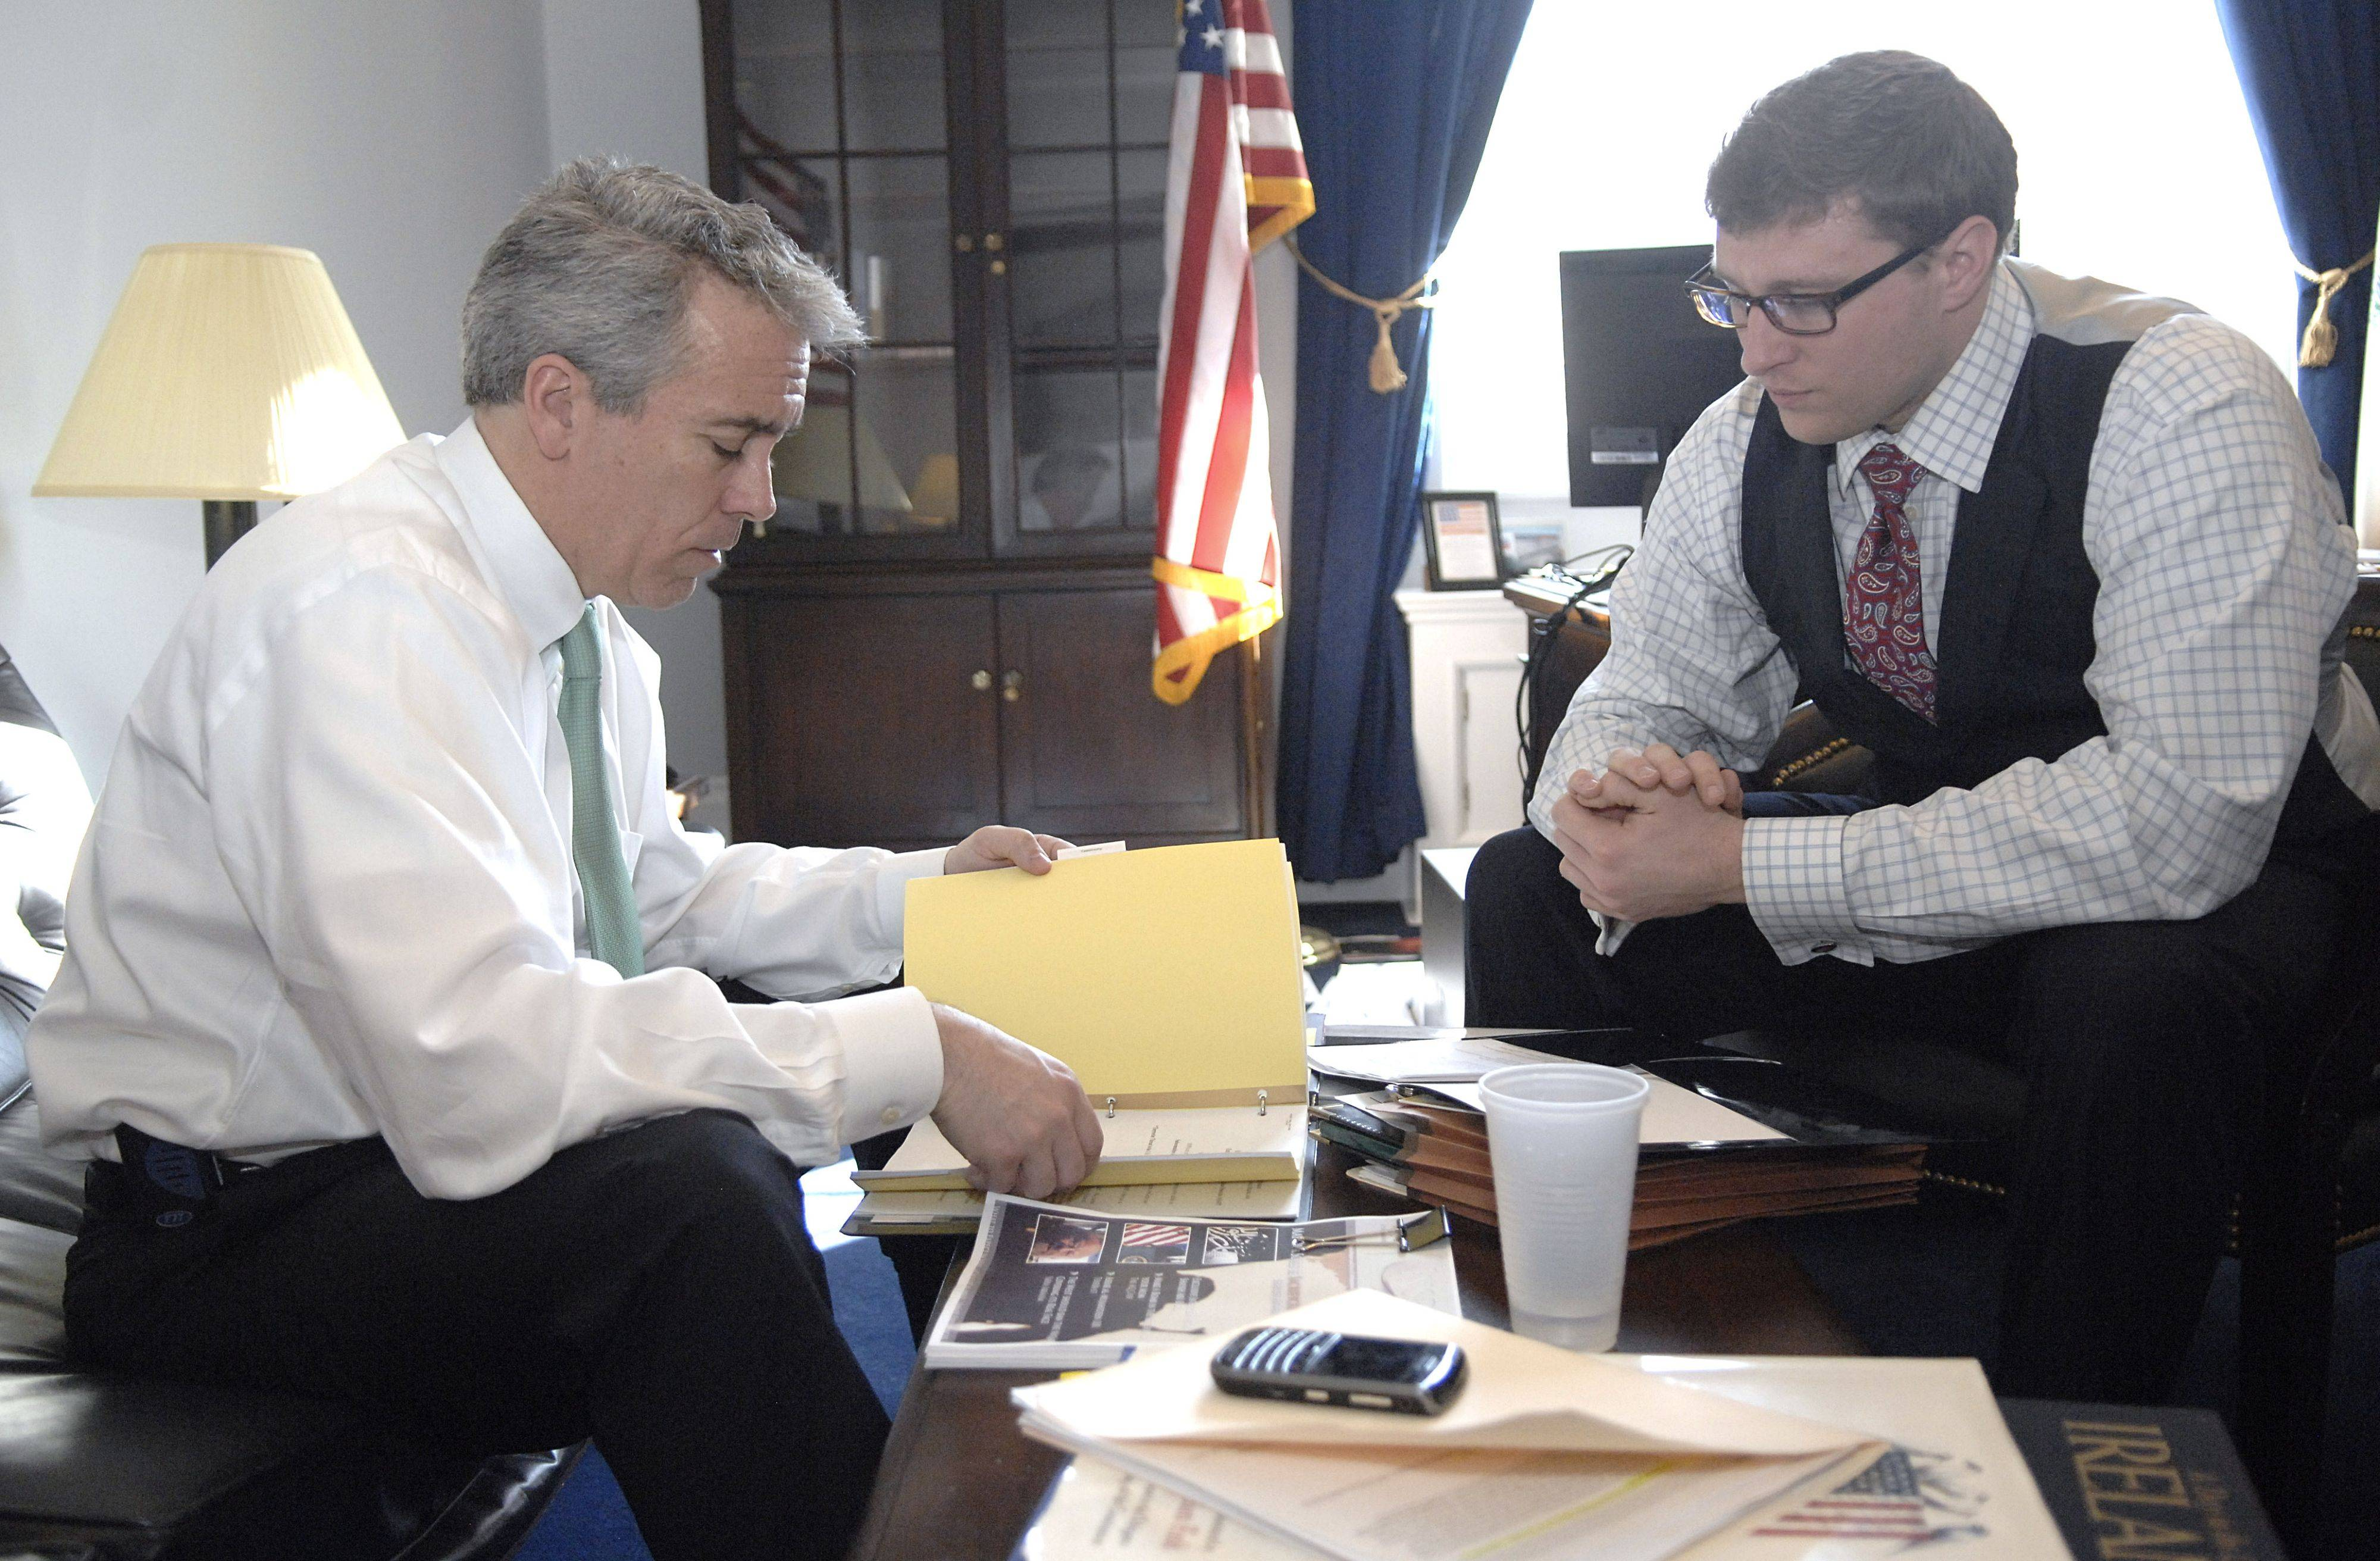 Illinois Congressman Joe Walsh meets with Senior Legislative Assistant Zach Stone before attending a meeting with the Committee on Homeland Security on Wednesday, March 2 in Washington D.C.